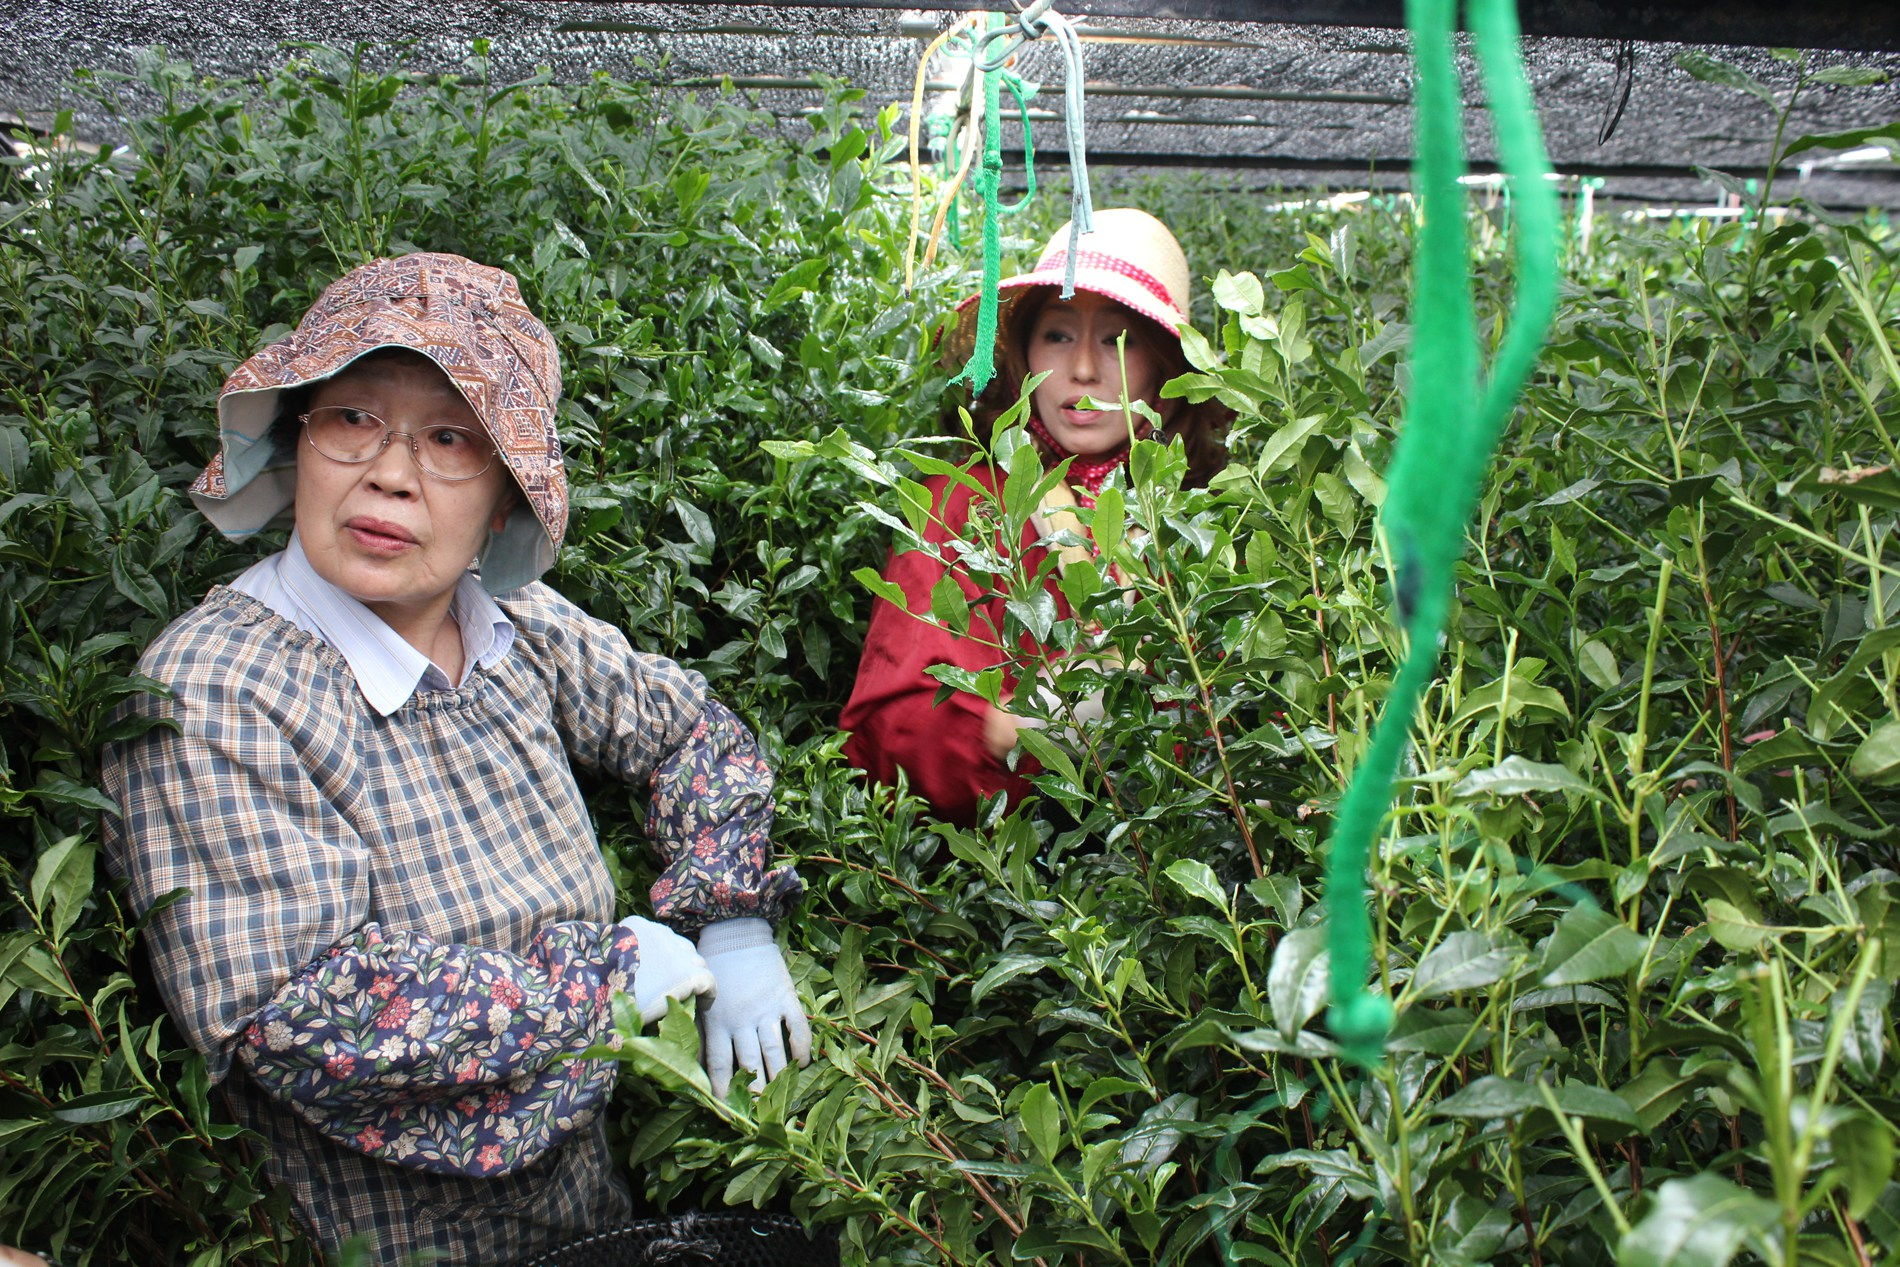 Workers at Matcha Bar's supplier in Nishio. Courtesy of Matcha Bar.